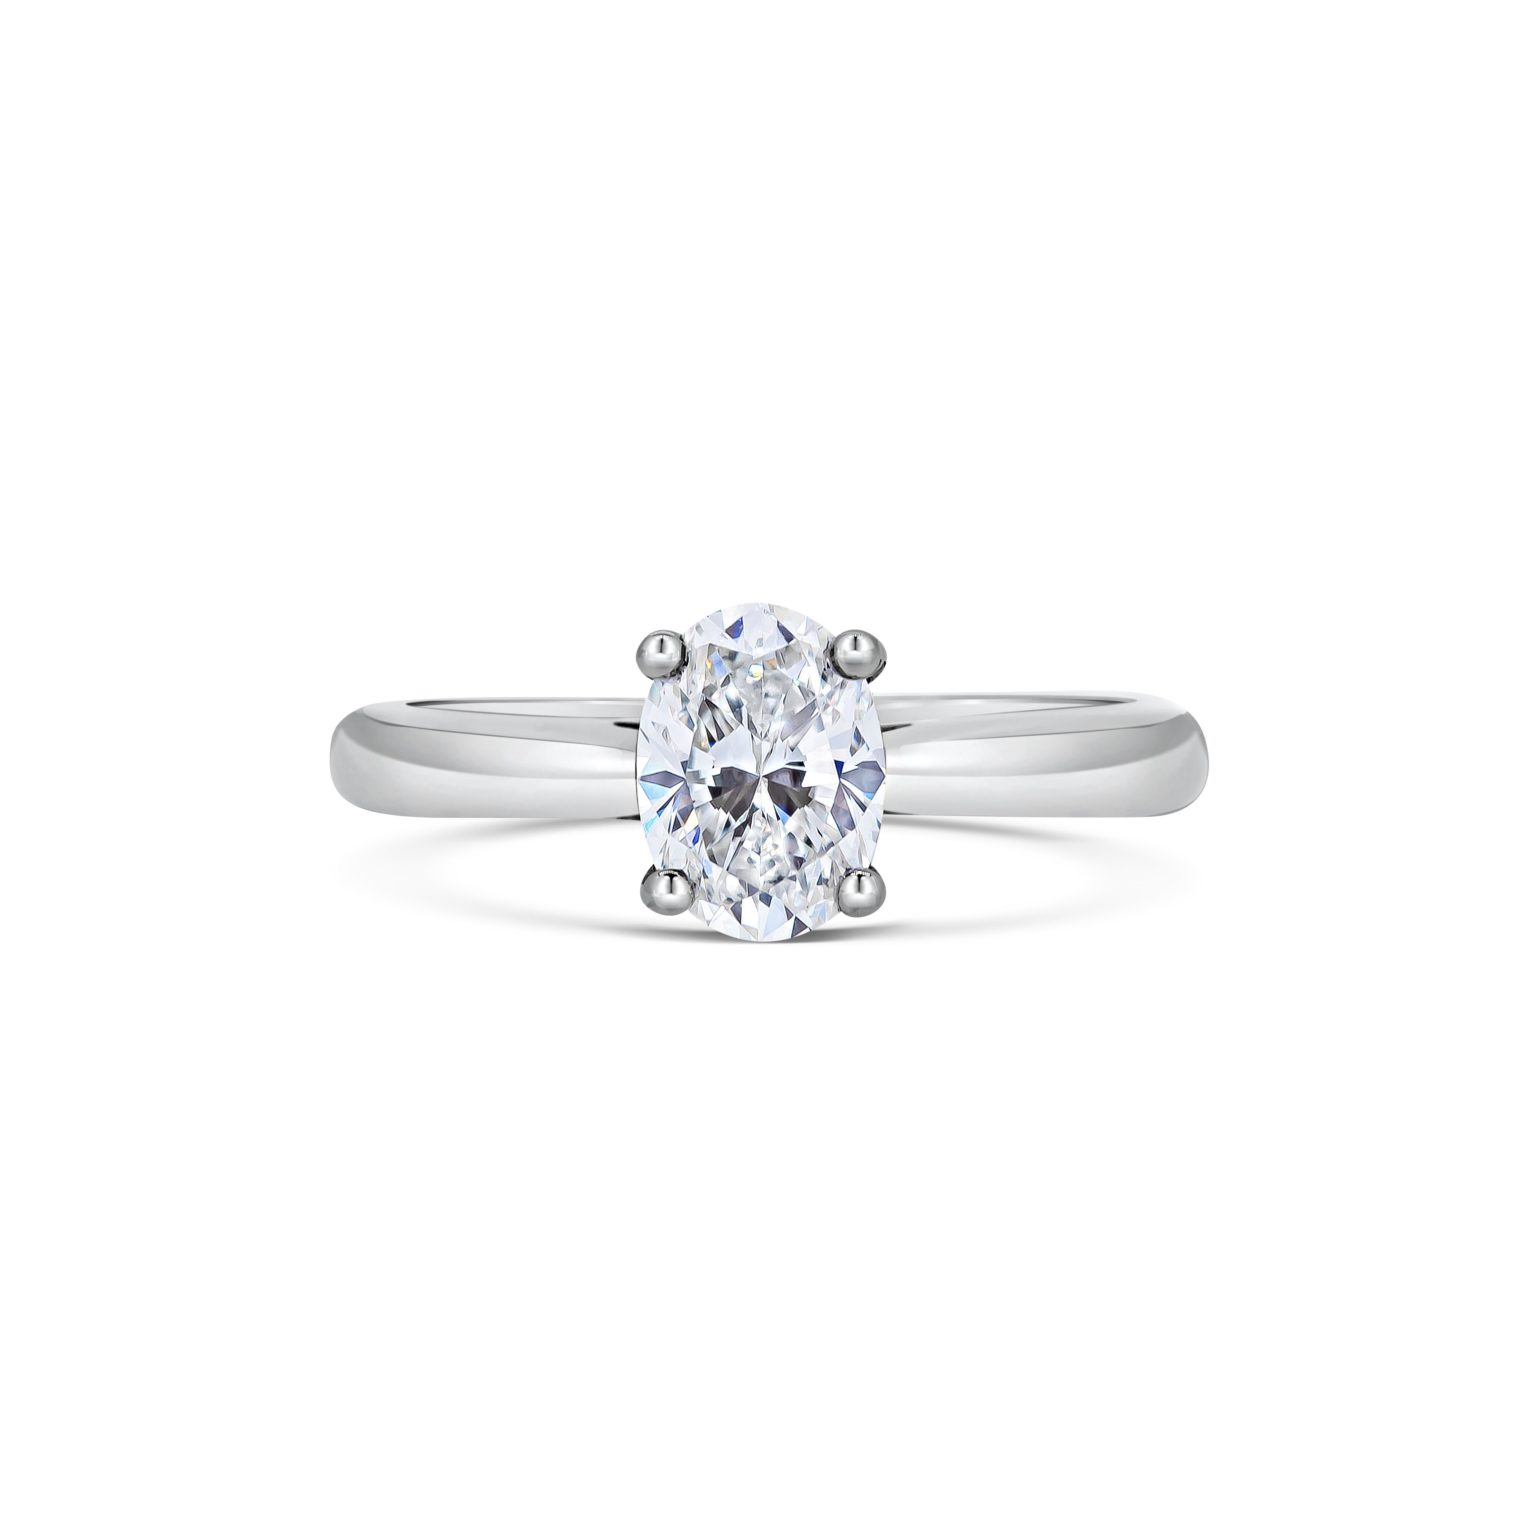 Anna Oval Cut Diamond Solitaire Engagement Ring